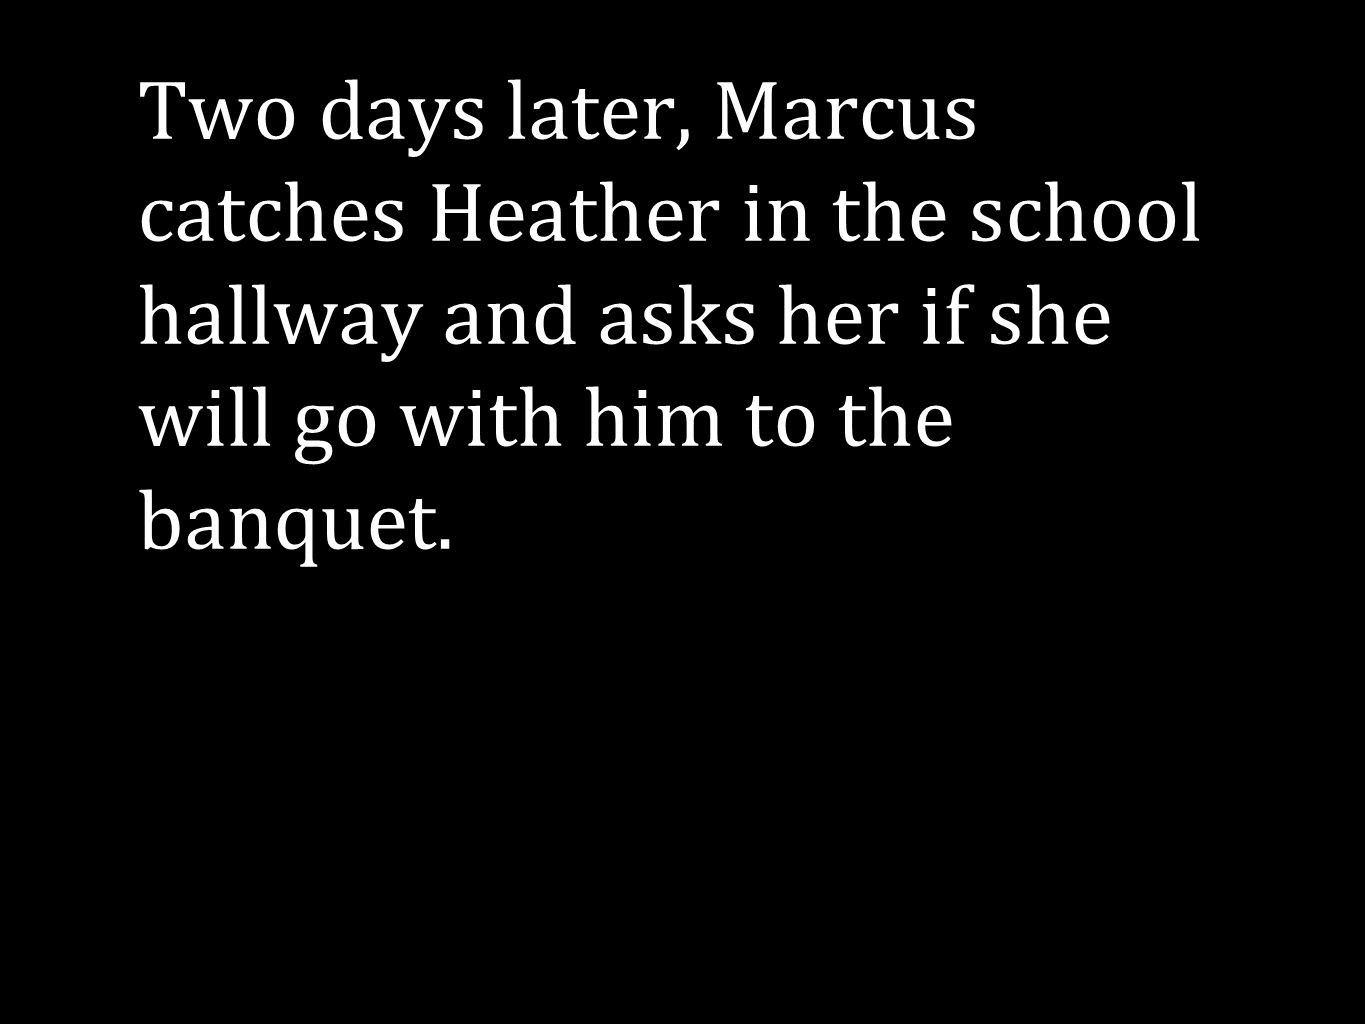 #7: Dilemma Two days later, Marcus catches Heather in the school hallway and asks her if she will go with him to the banquet.